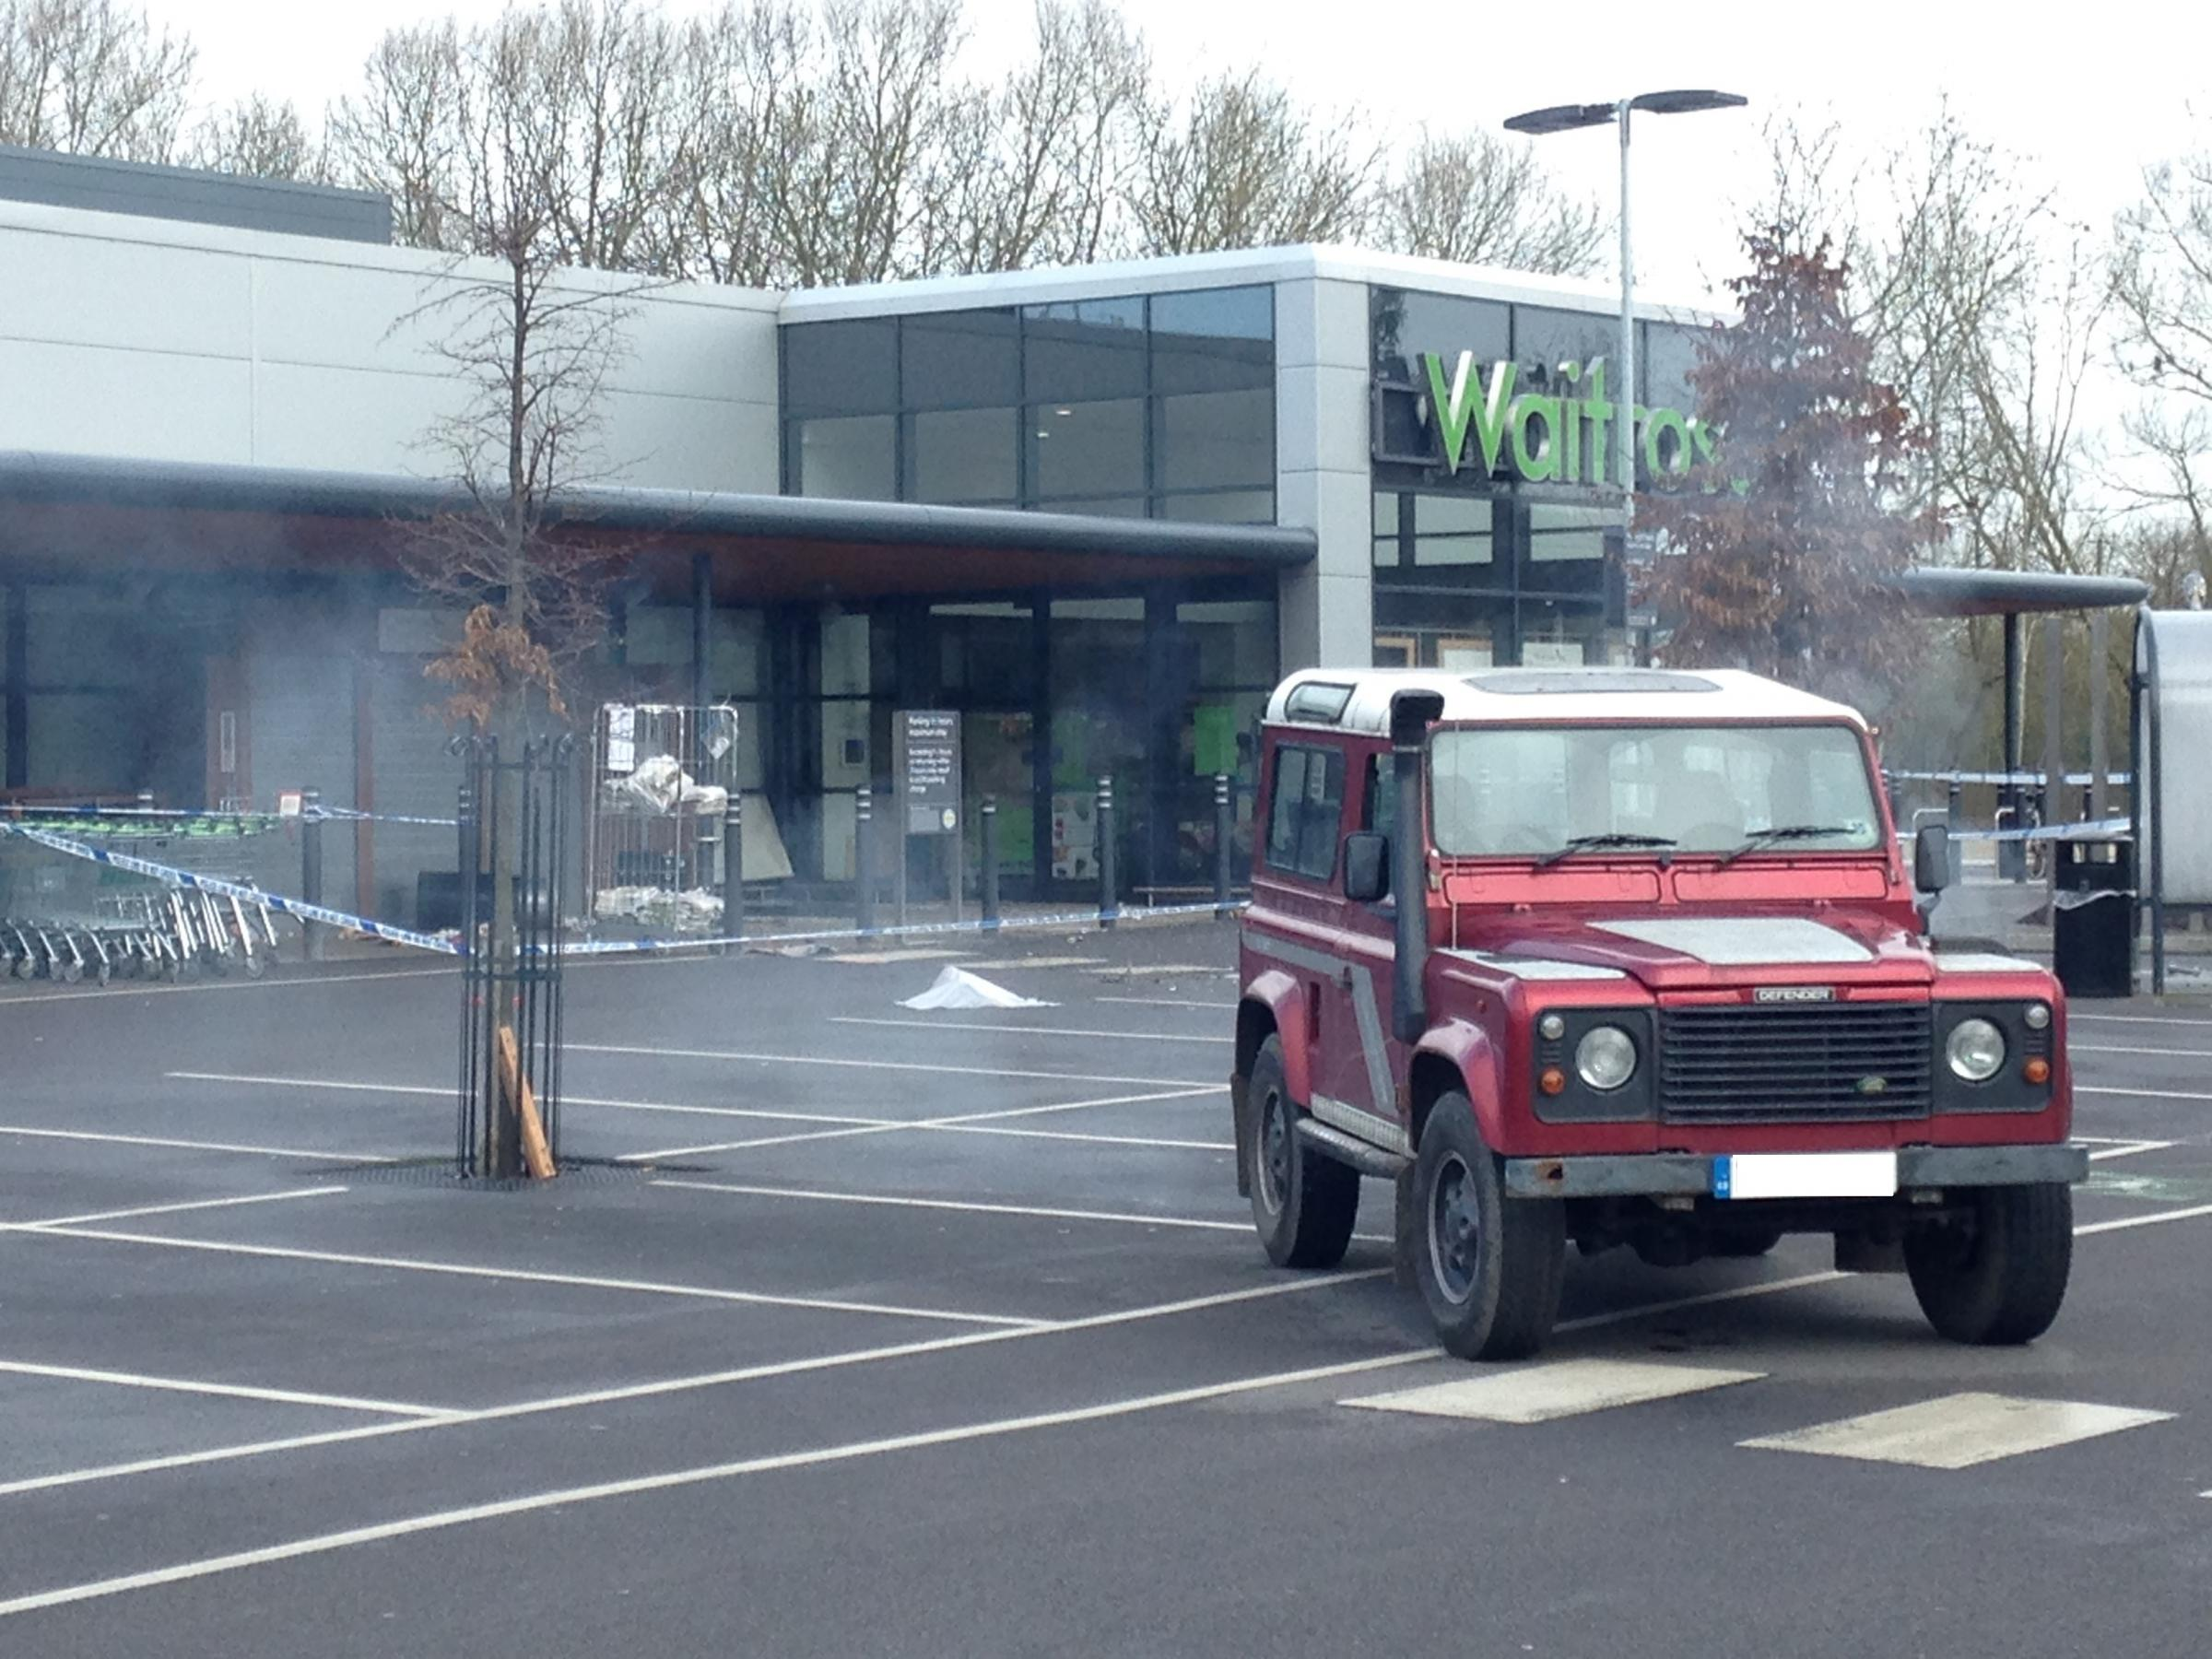 The scene at Waitrose shortly before 9am yesterday